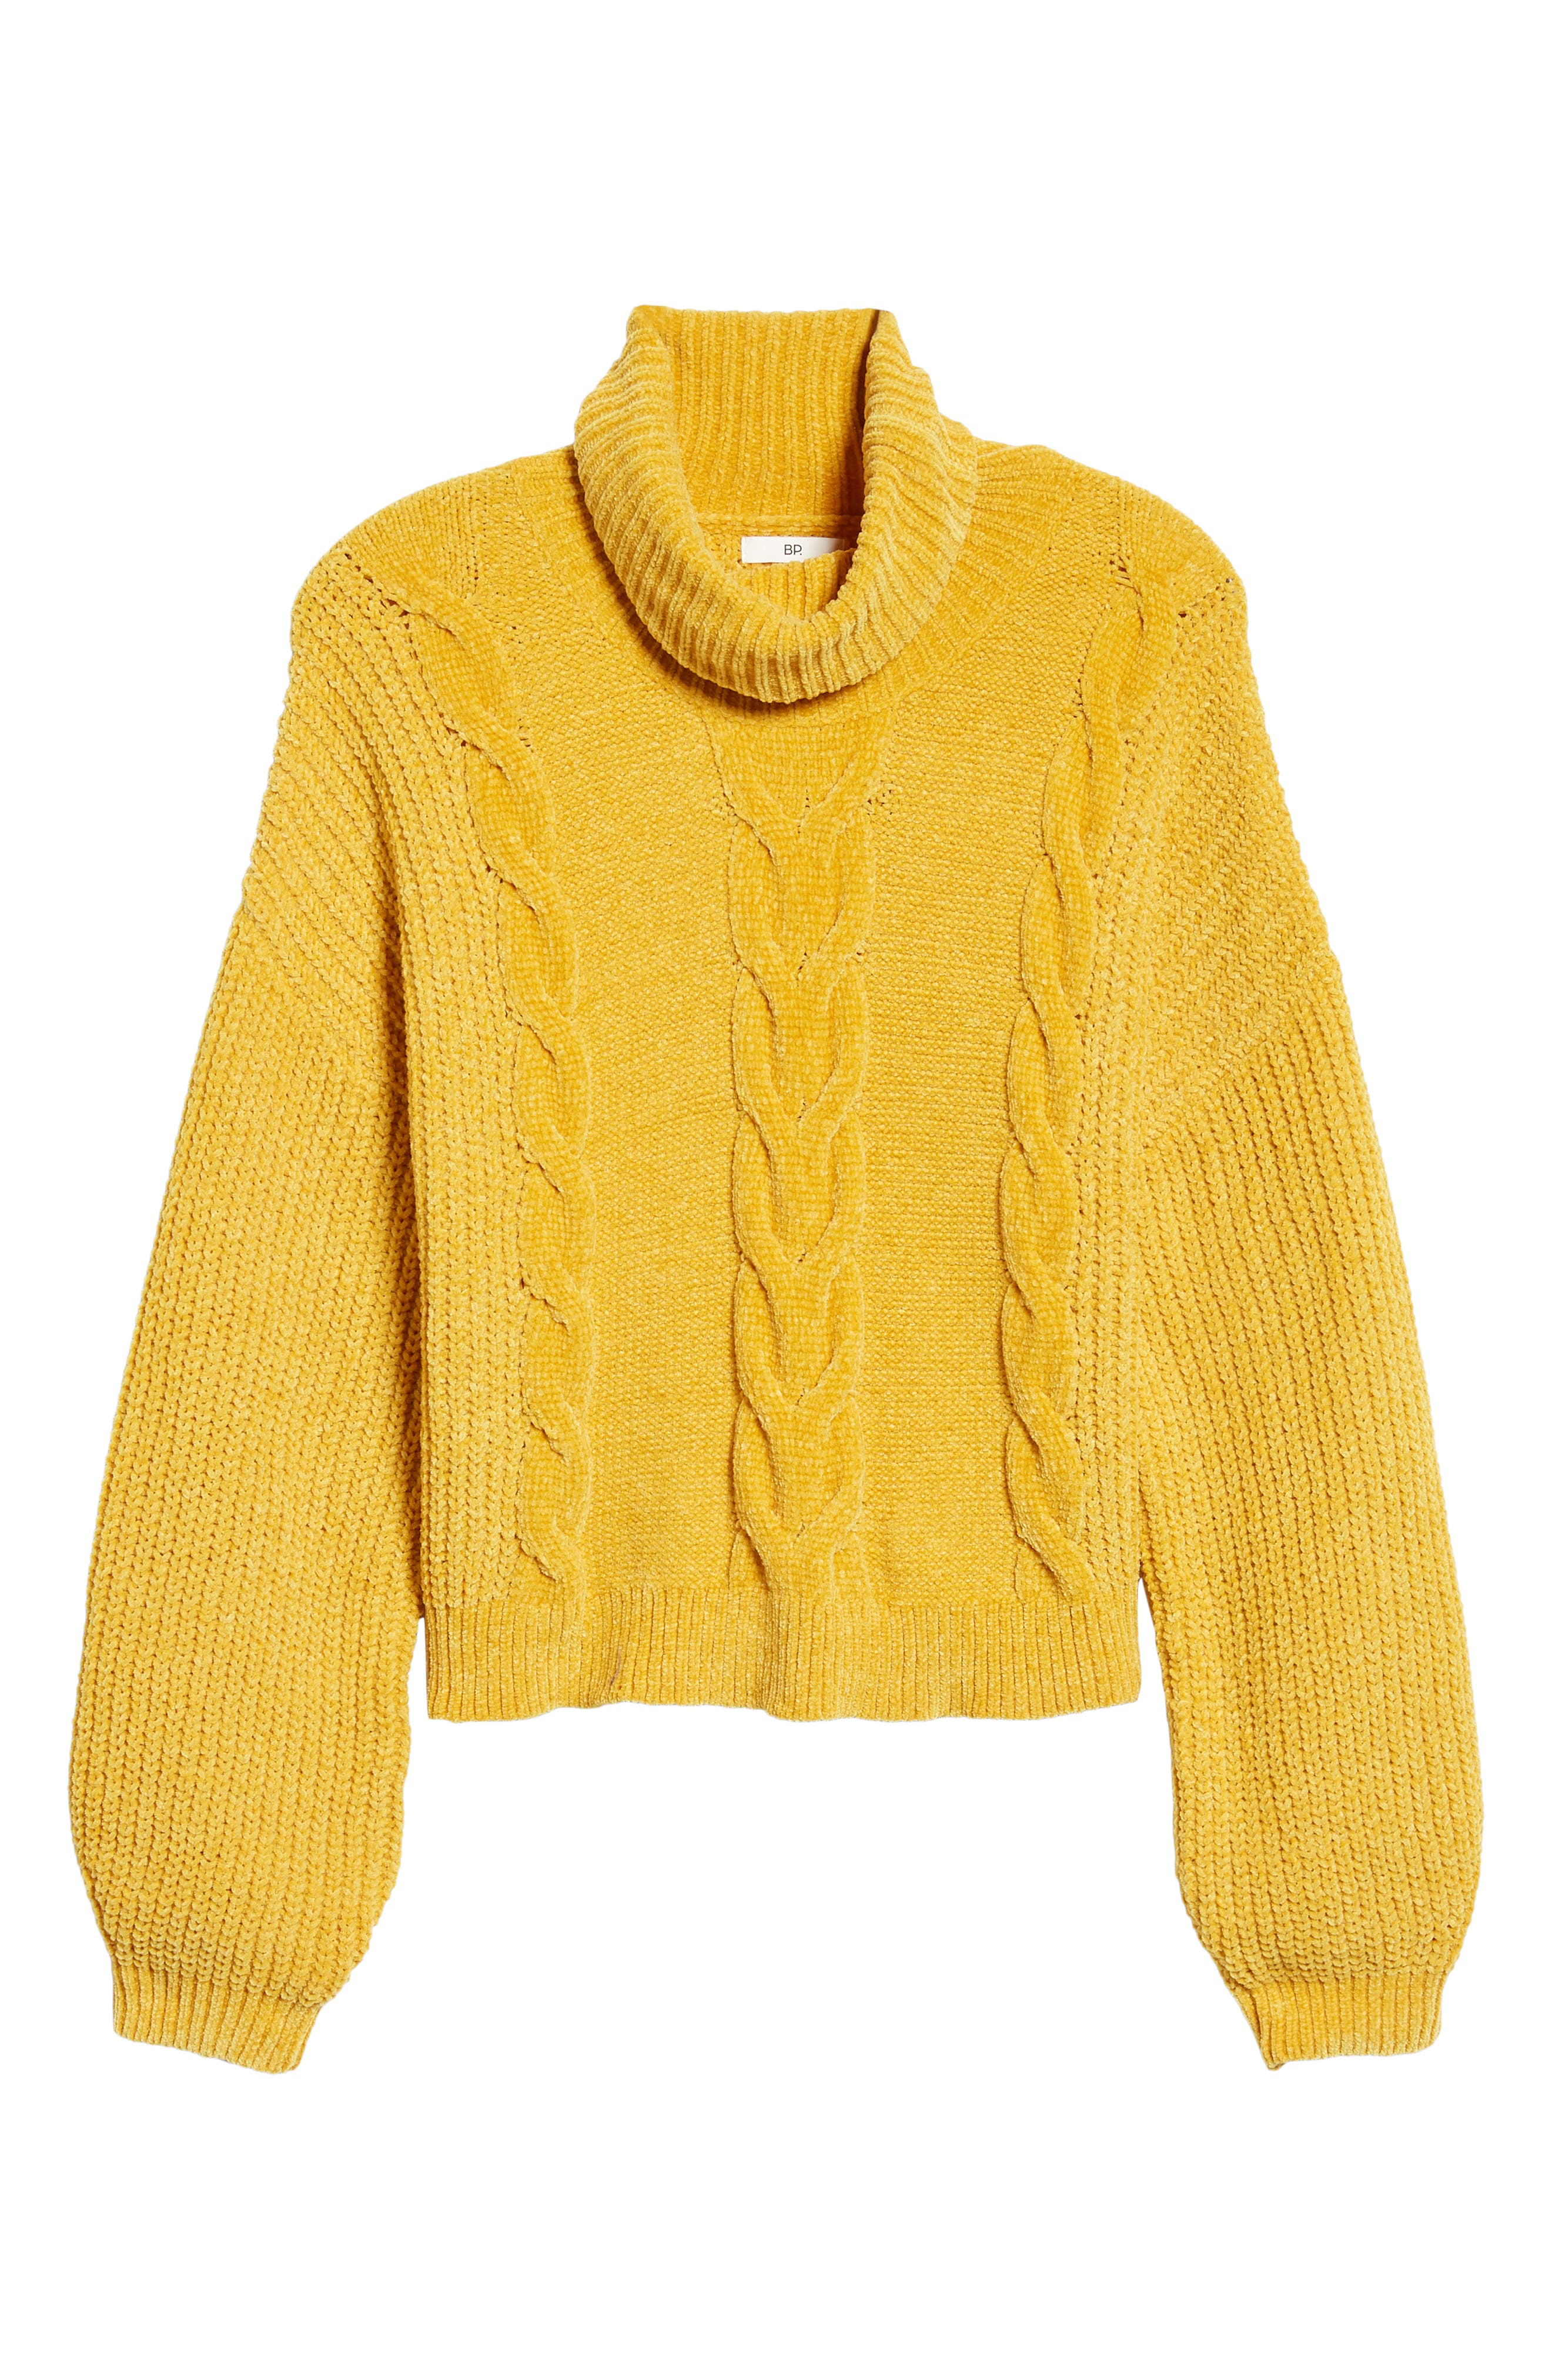 Cable Knit Chenille Sweater,                             Alternate thumbnail 6, color,                             YELLOW MINERAL